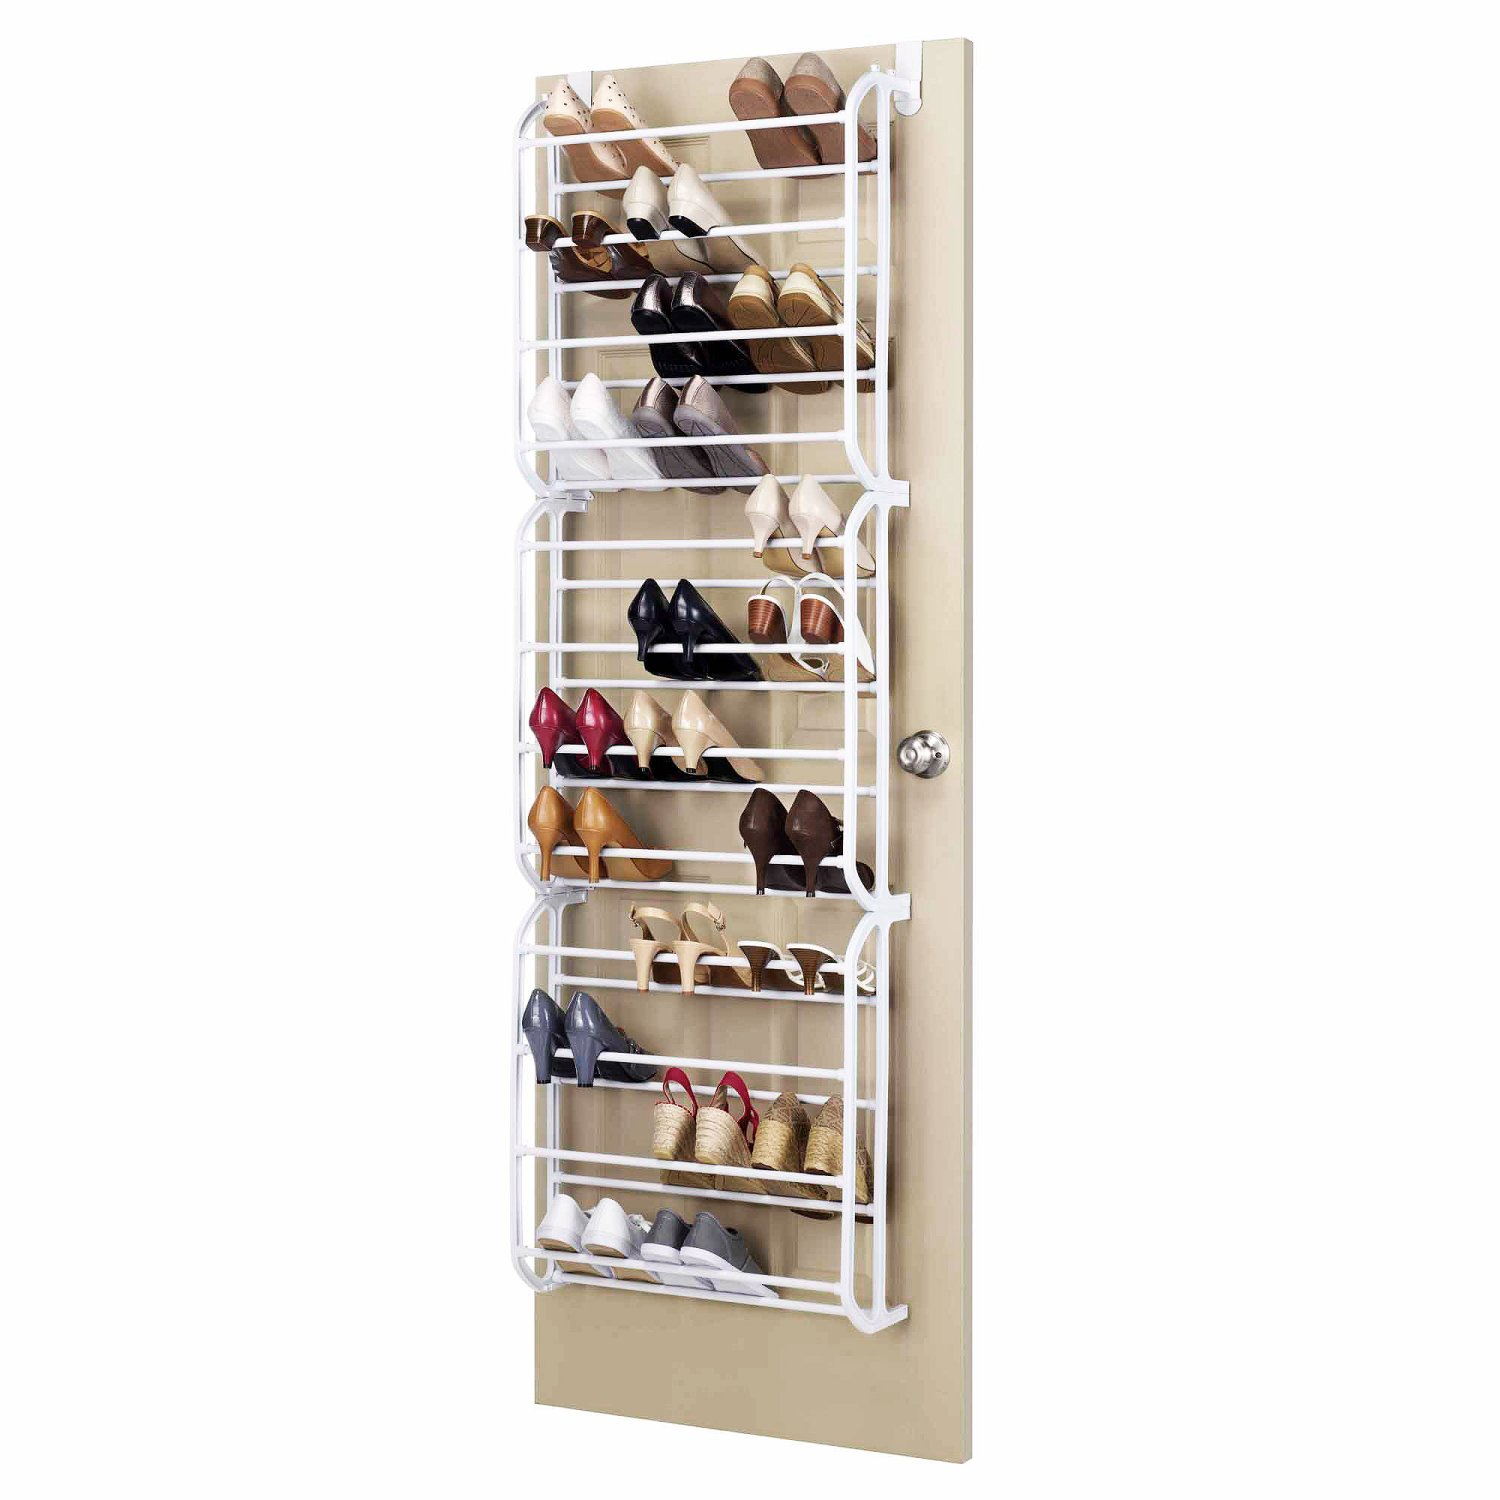 Door hanging shoe rack white 36 pair oypla for Door shoe organizer